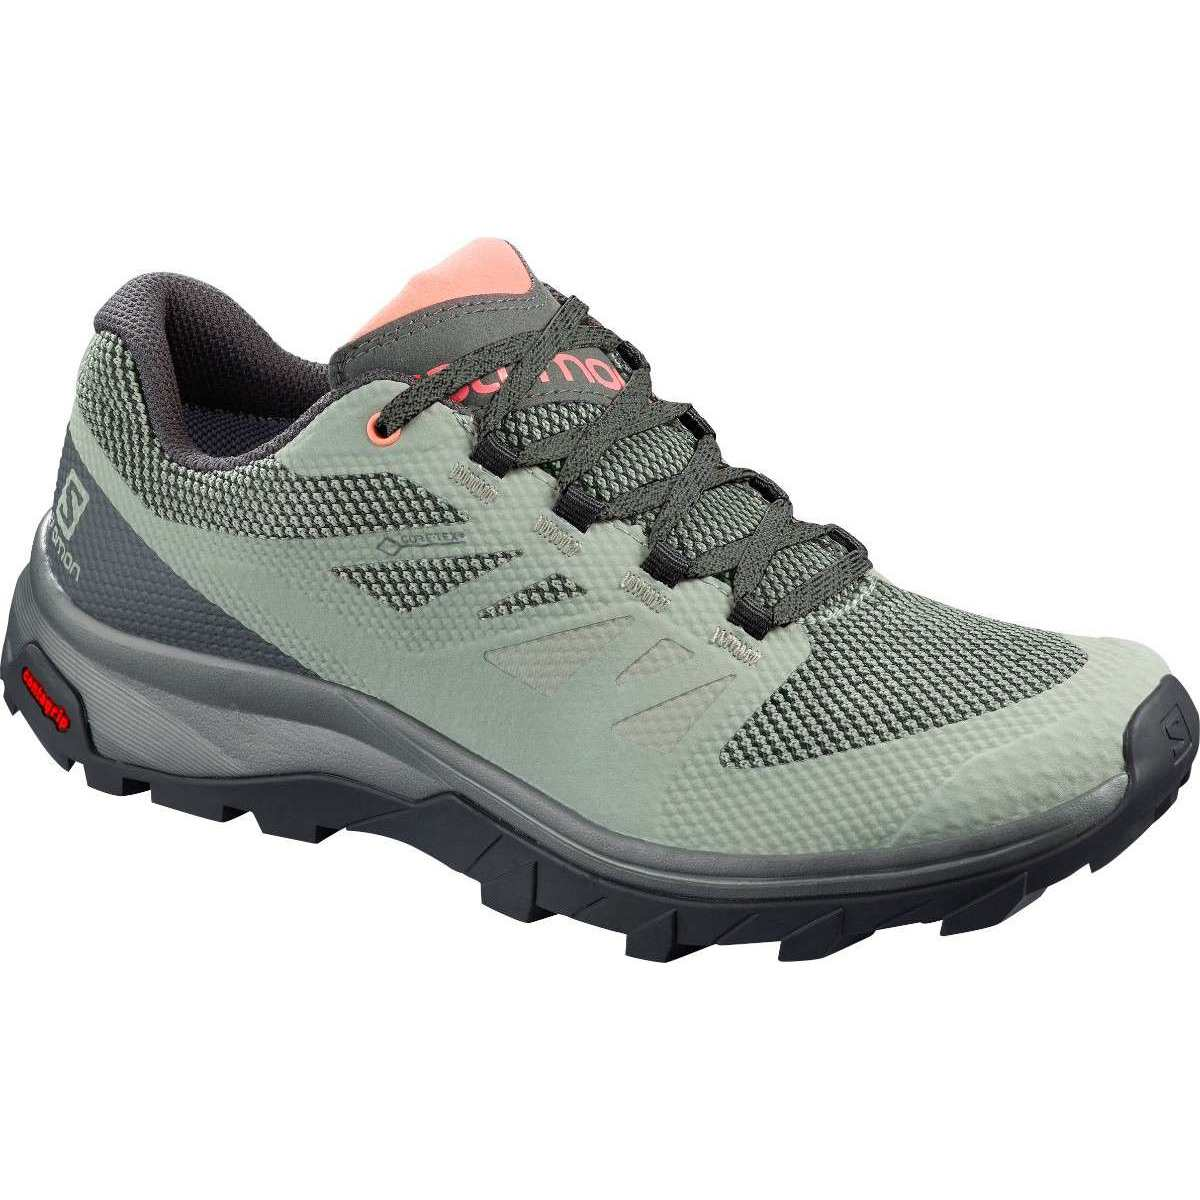 Salomon Ghete drumetie Salomon OUTLINE GTX W - Verde